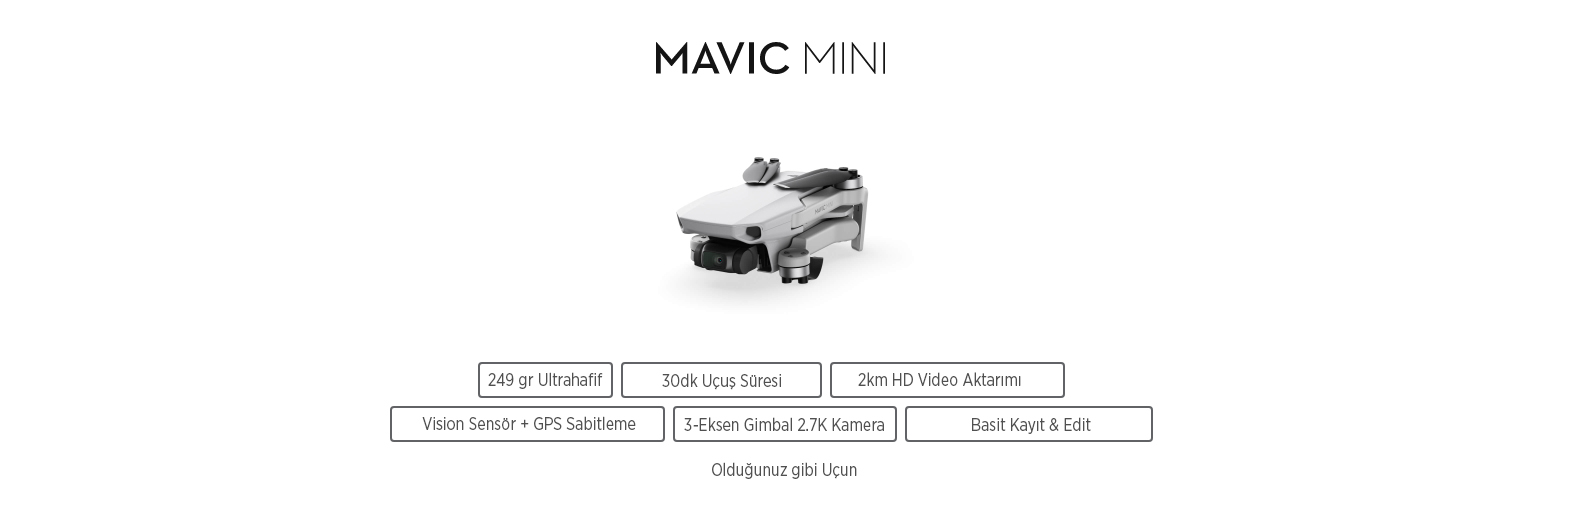 Mavic Mini Let creativity fly